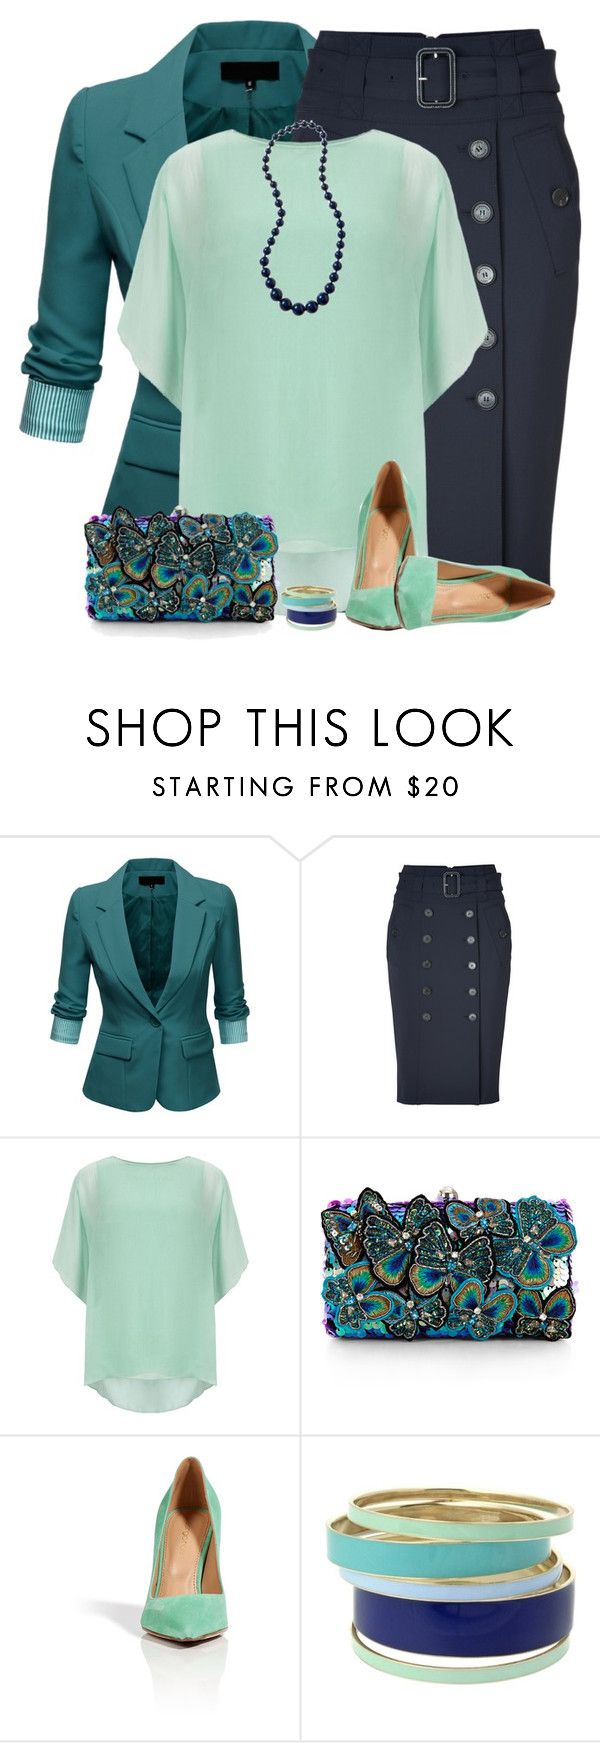 """""""Blue and Green"""" by daiscat ❤ liked on Polyvore featuring J.TOMSON, Burberry, Phase Eight, Rachel, Accessorize, Sergio Rossi and Lipsy"""